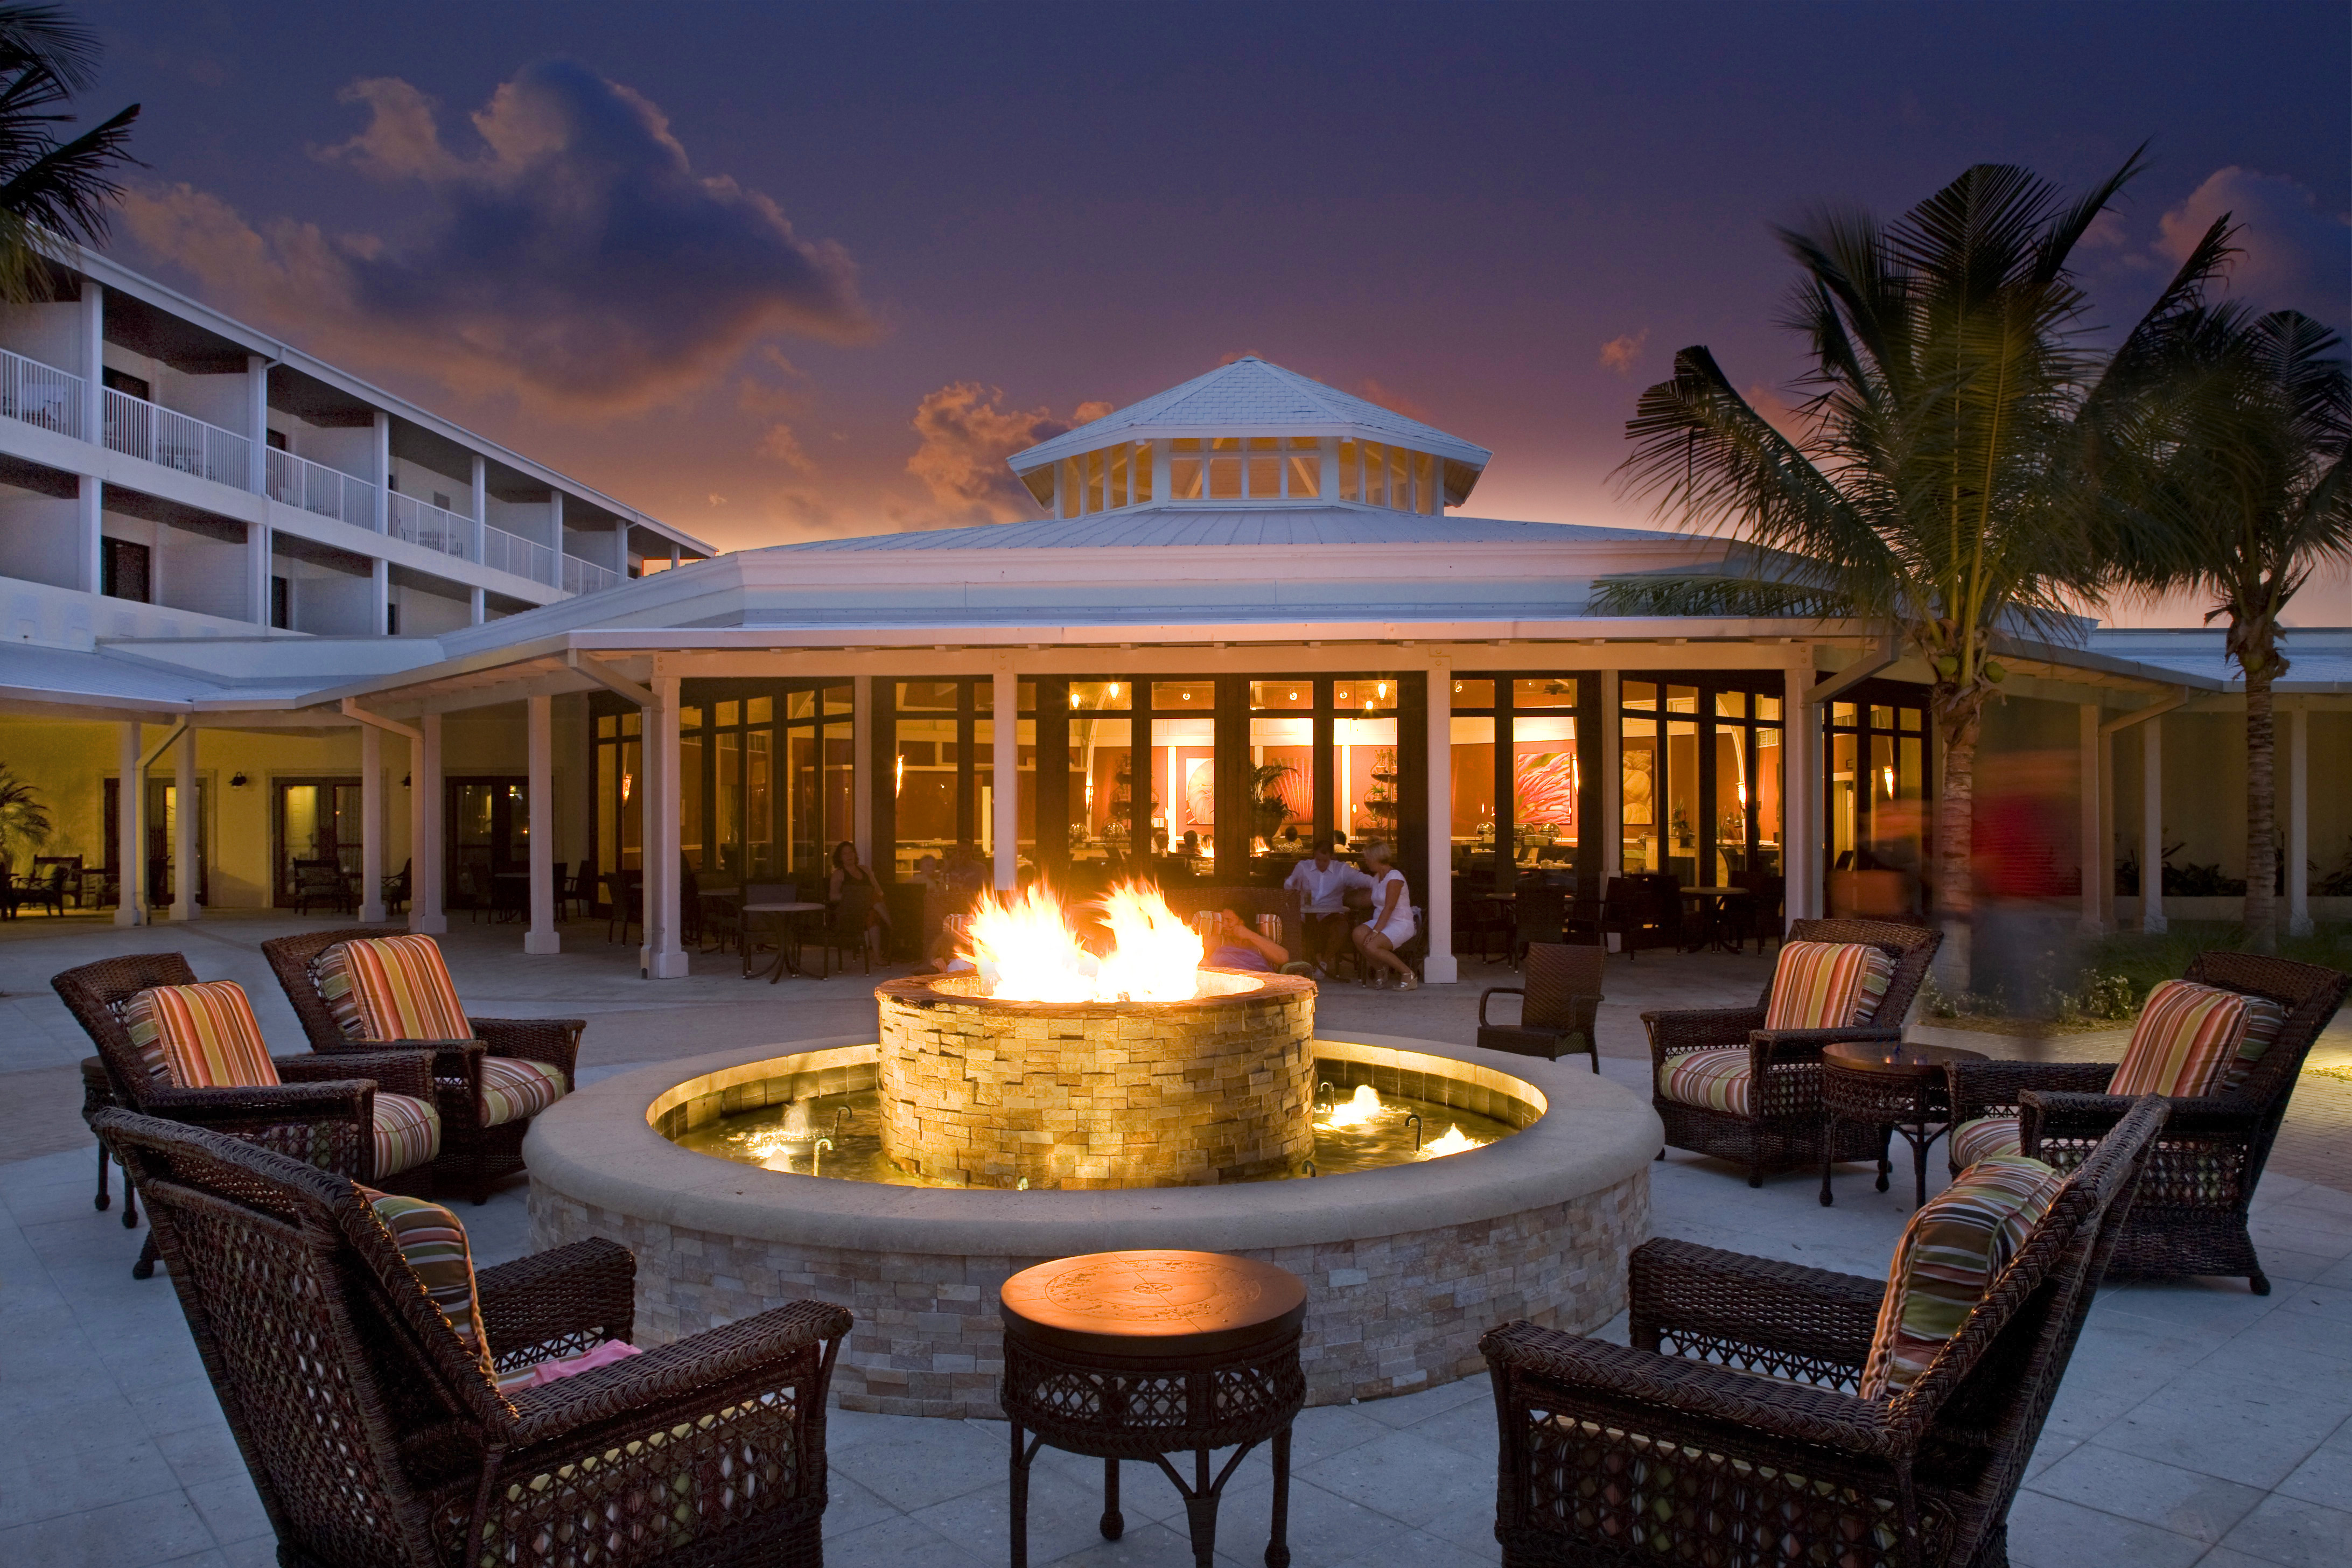 Fire Pit Pictures Of Resorts In Florida